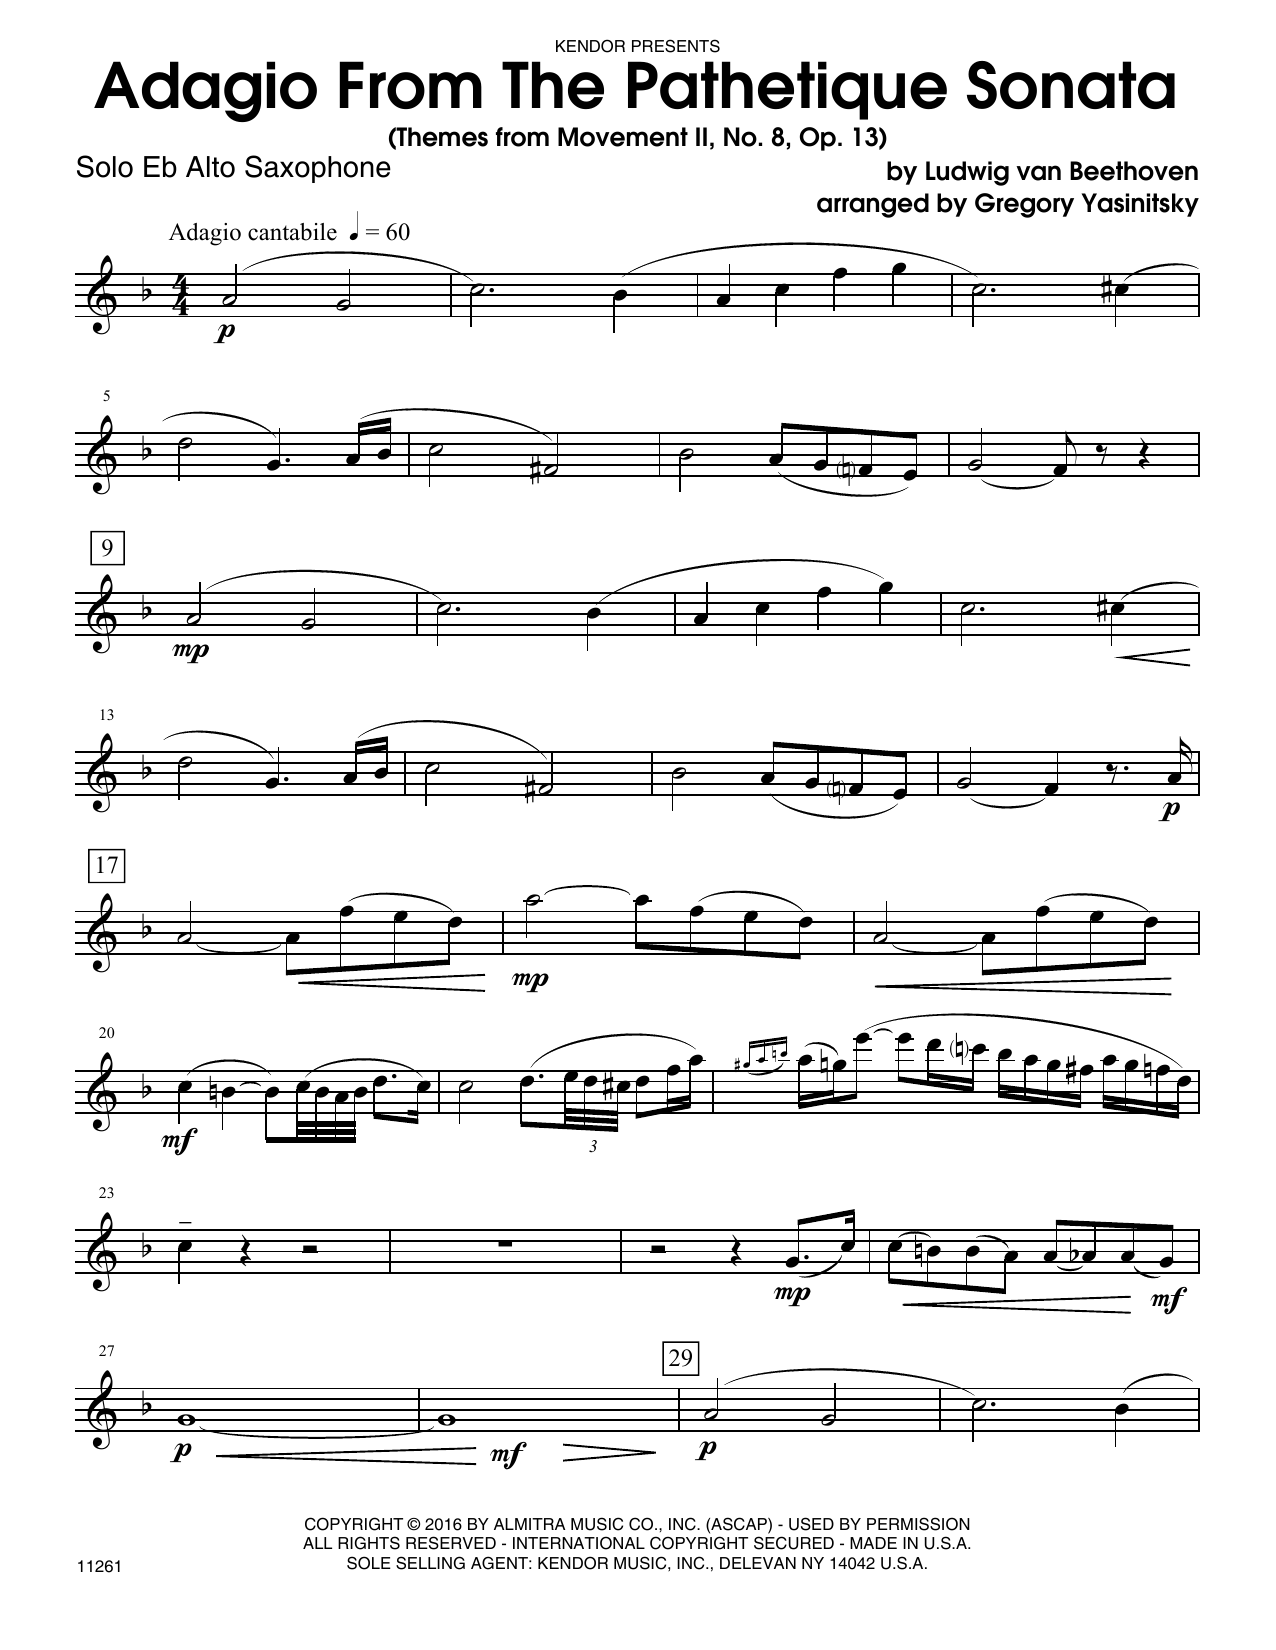 Adagio From The Pathetique Sonata (Themes From Movement II, No. 8, Op. 13) (complete set of parts) sheet music for alto saxophone and piano by Yasinitsky and Ludwig van Beethoven. Score Image Preview.